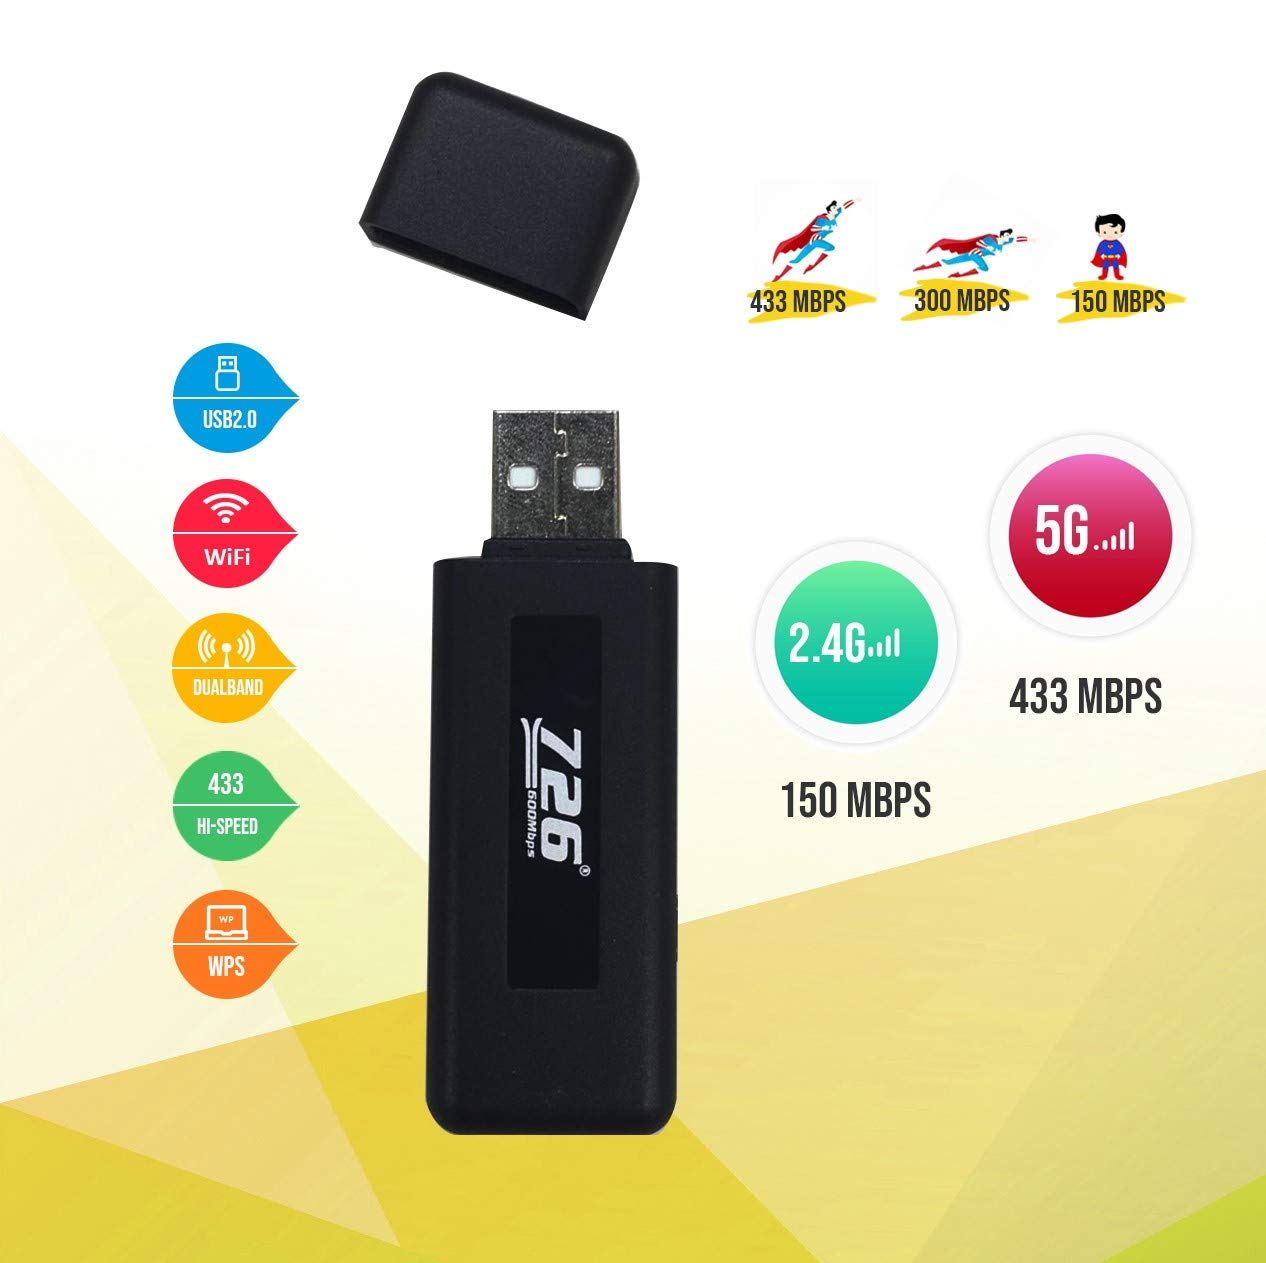 MAG-W600: WiFi Adapter 600Mbps WiFi Dongle Mini Dual Band 2.4G/5G USB Wireless Network Adapter Support for MAG 254 256 322 Mag322w1 Mag324w2